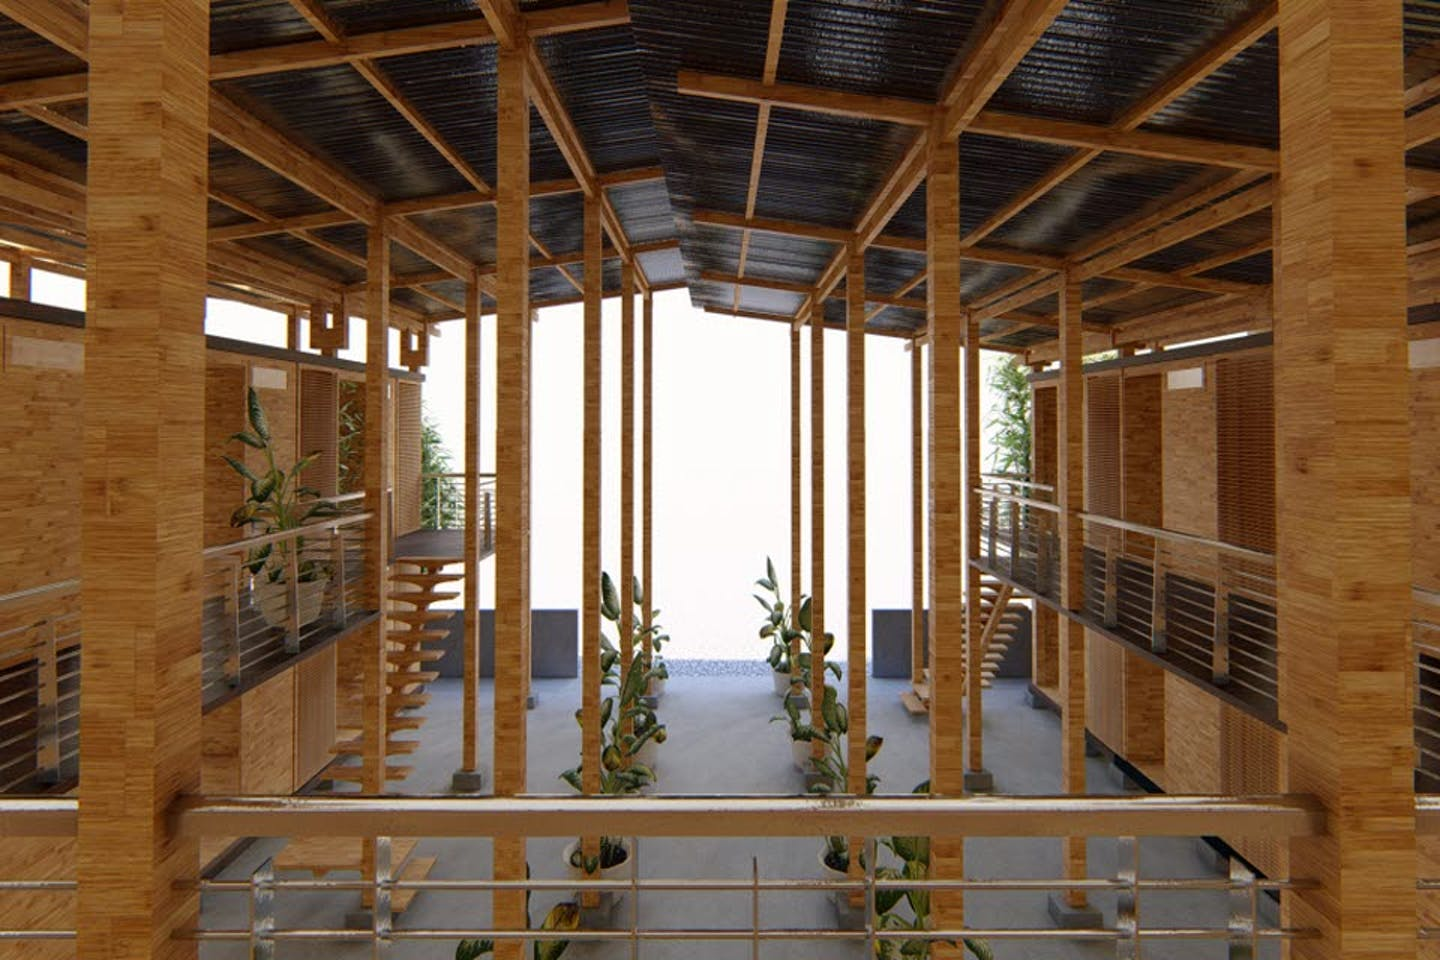 The bamboo house designed by Earl Patrick Forlales, which won the Cities of the Future competition in 2019.